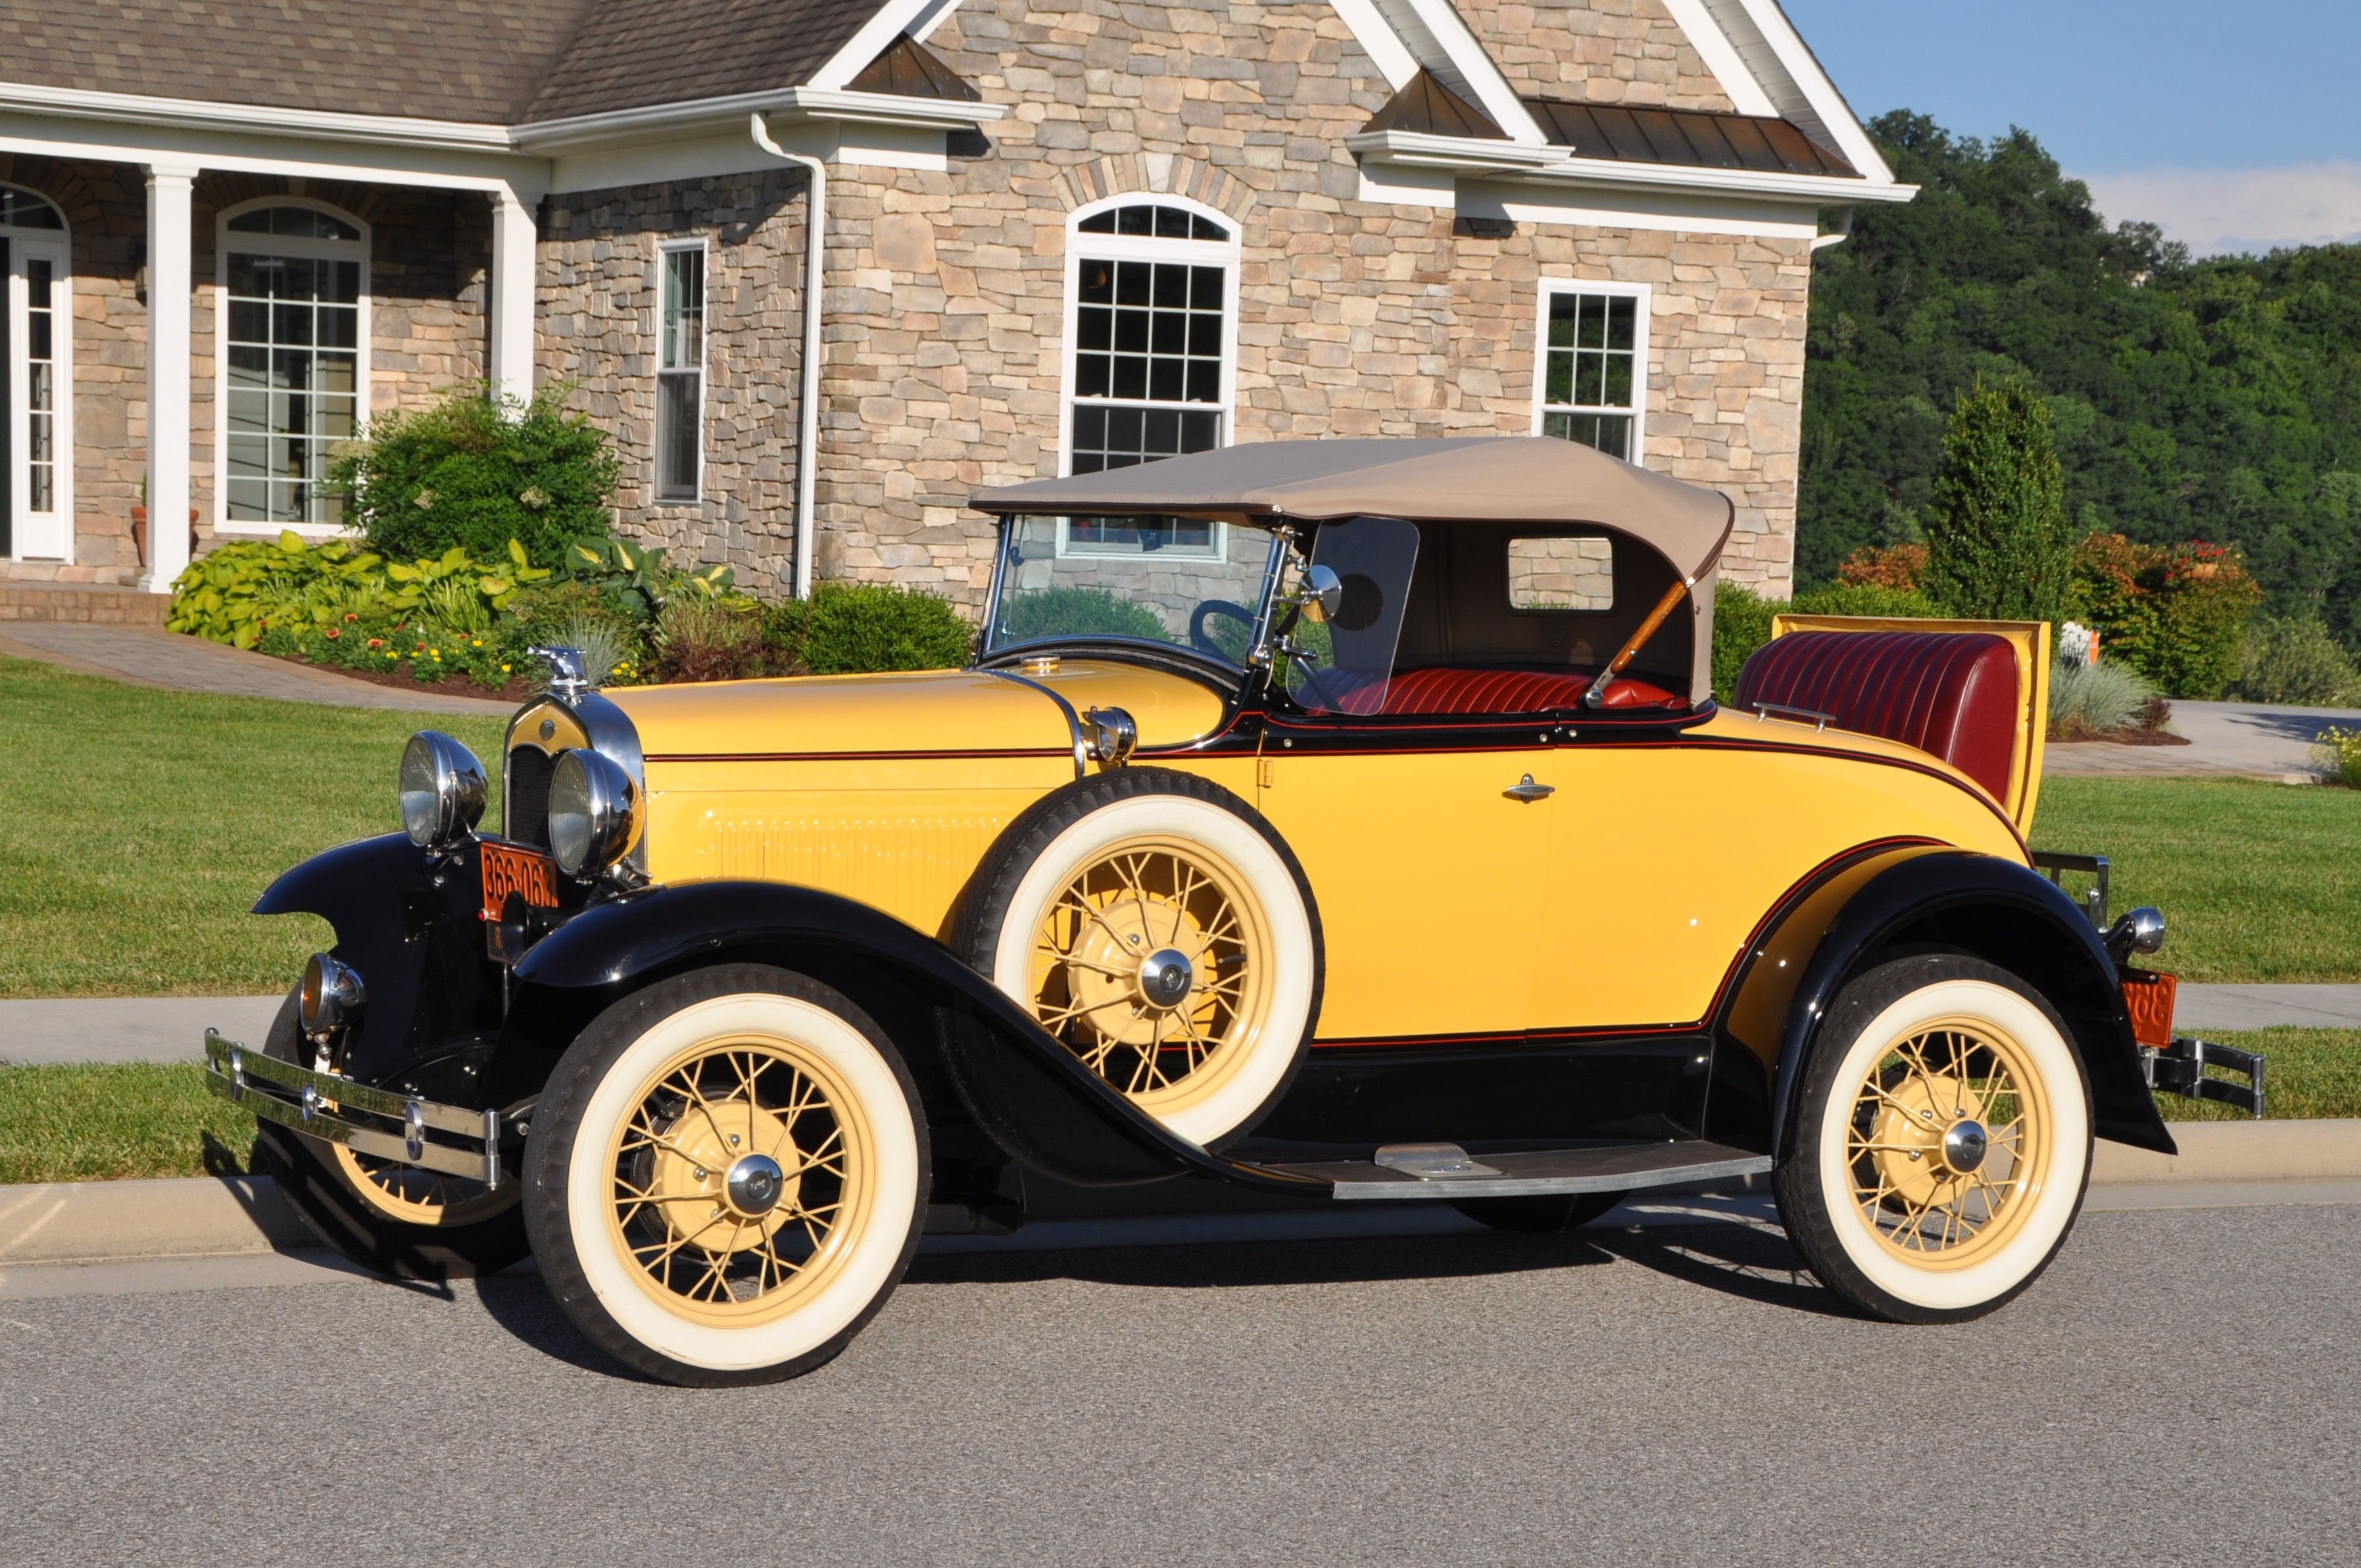 1931 Ford Model A Deluxe Roadster in Bronson Yellow.